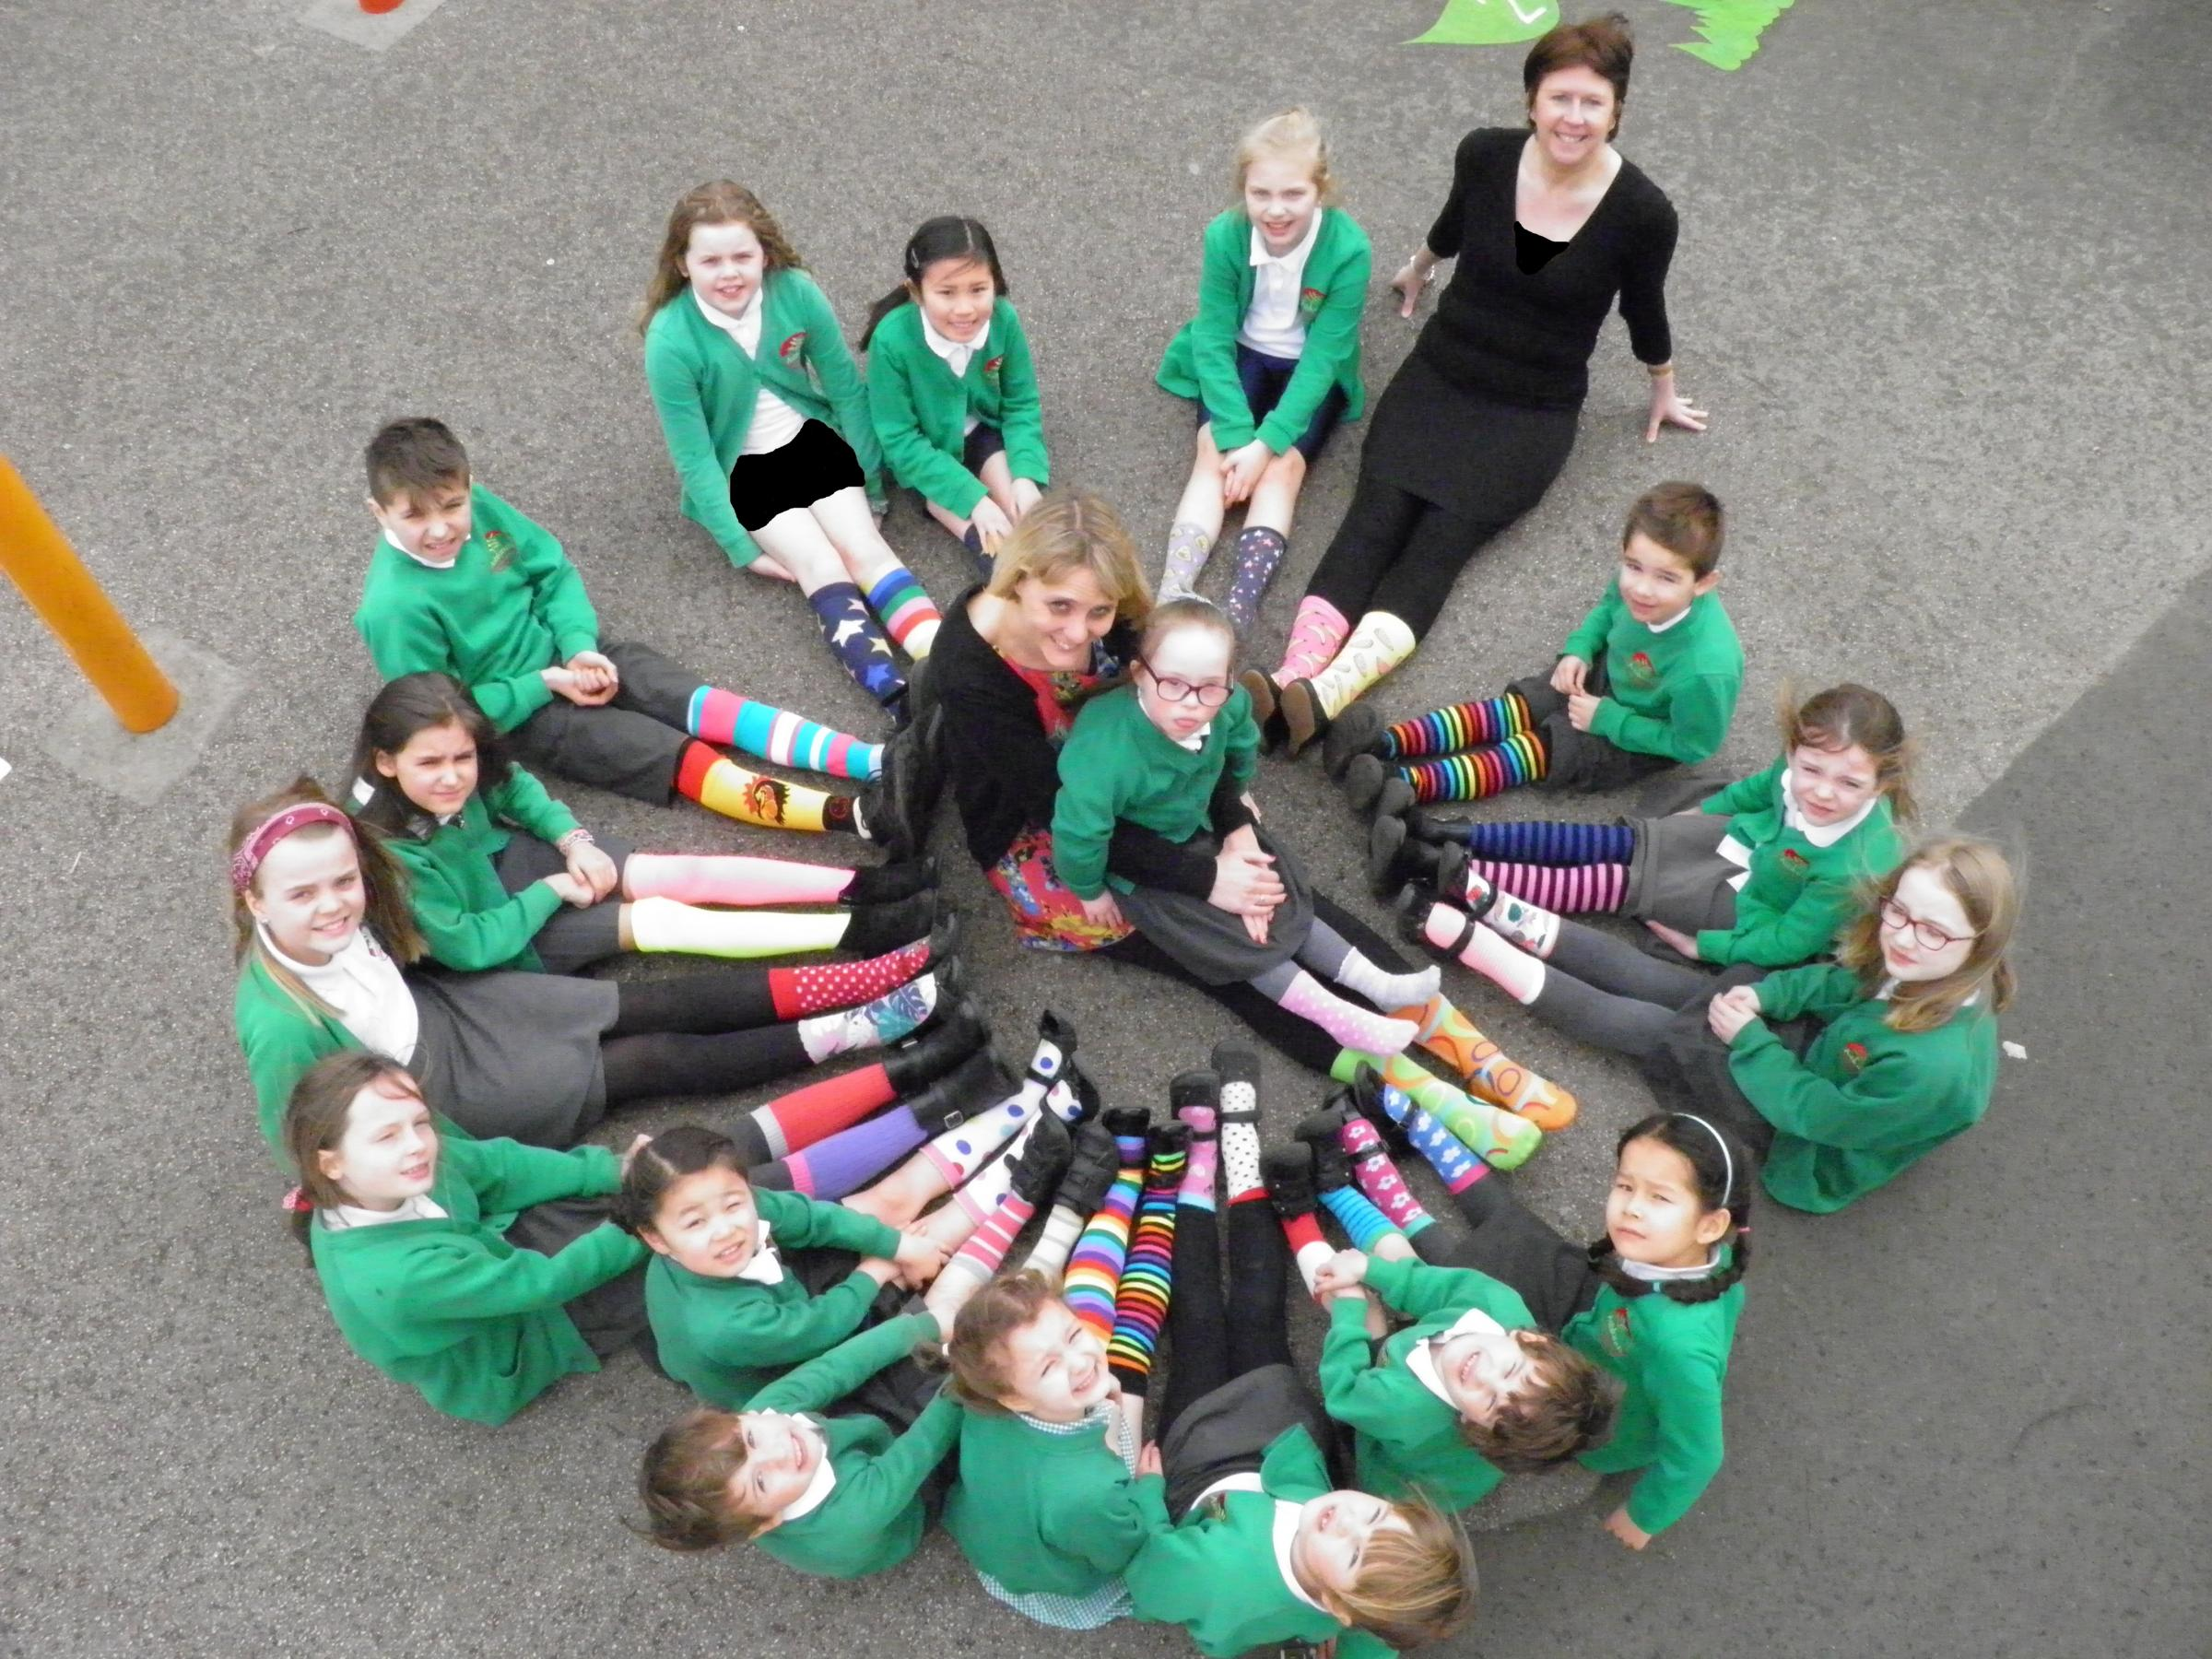 Pupils and teachers at Ashlands Primary School in Ilkley took part in World Down Syndrome Day on March 21